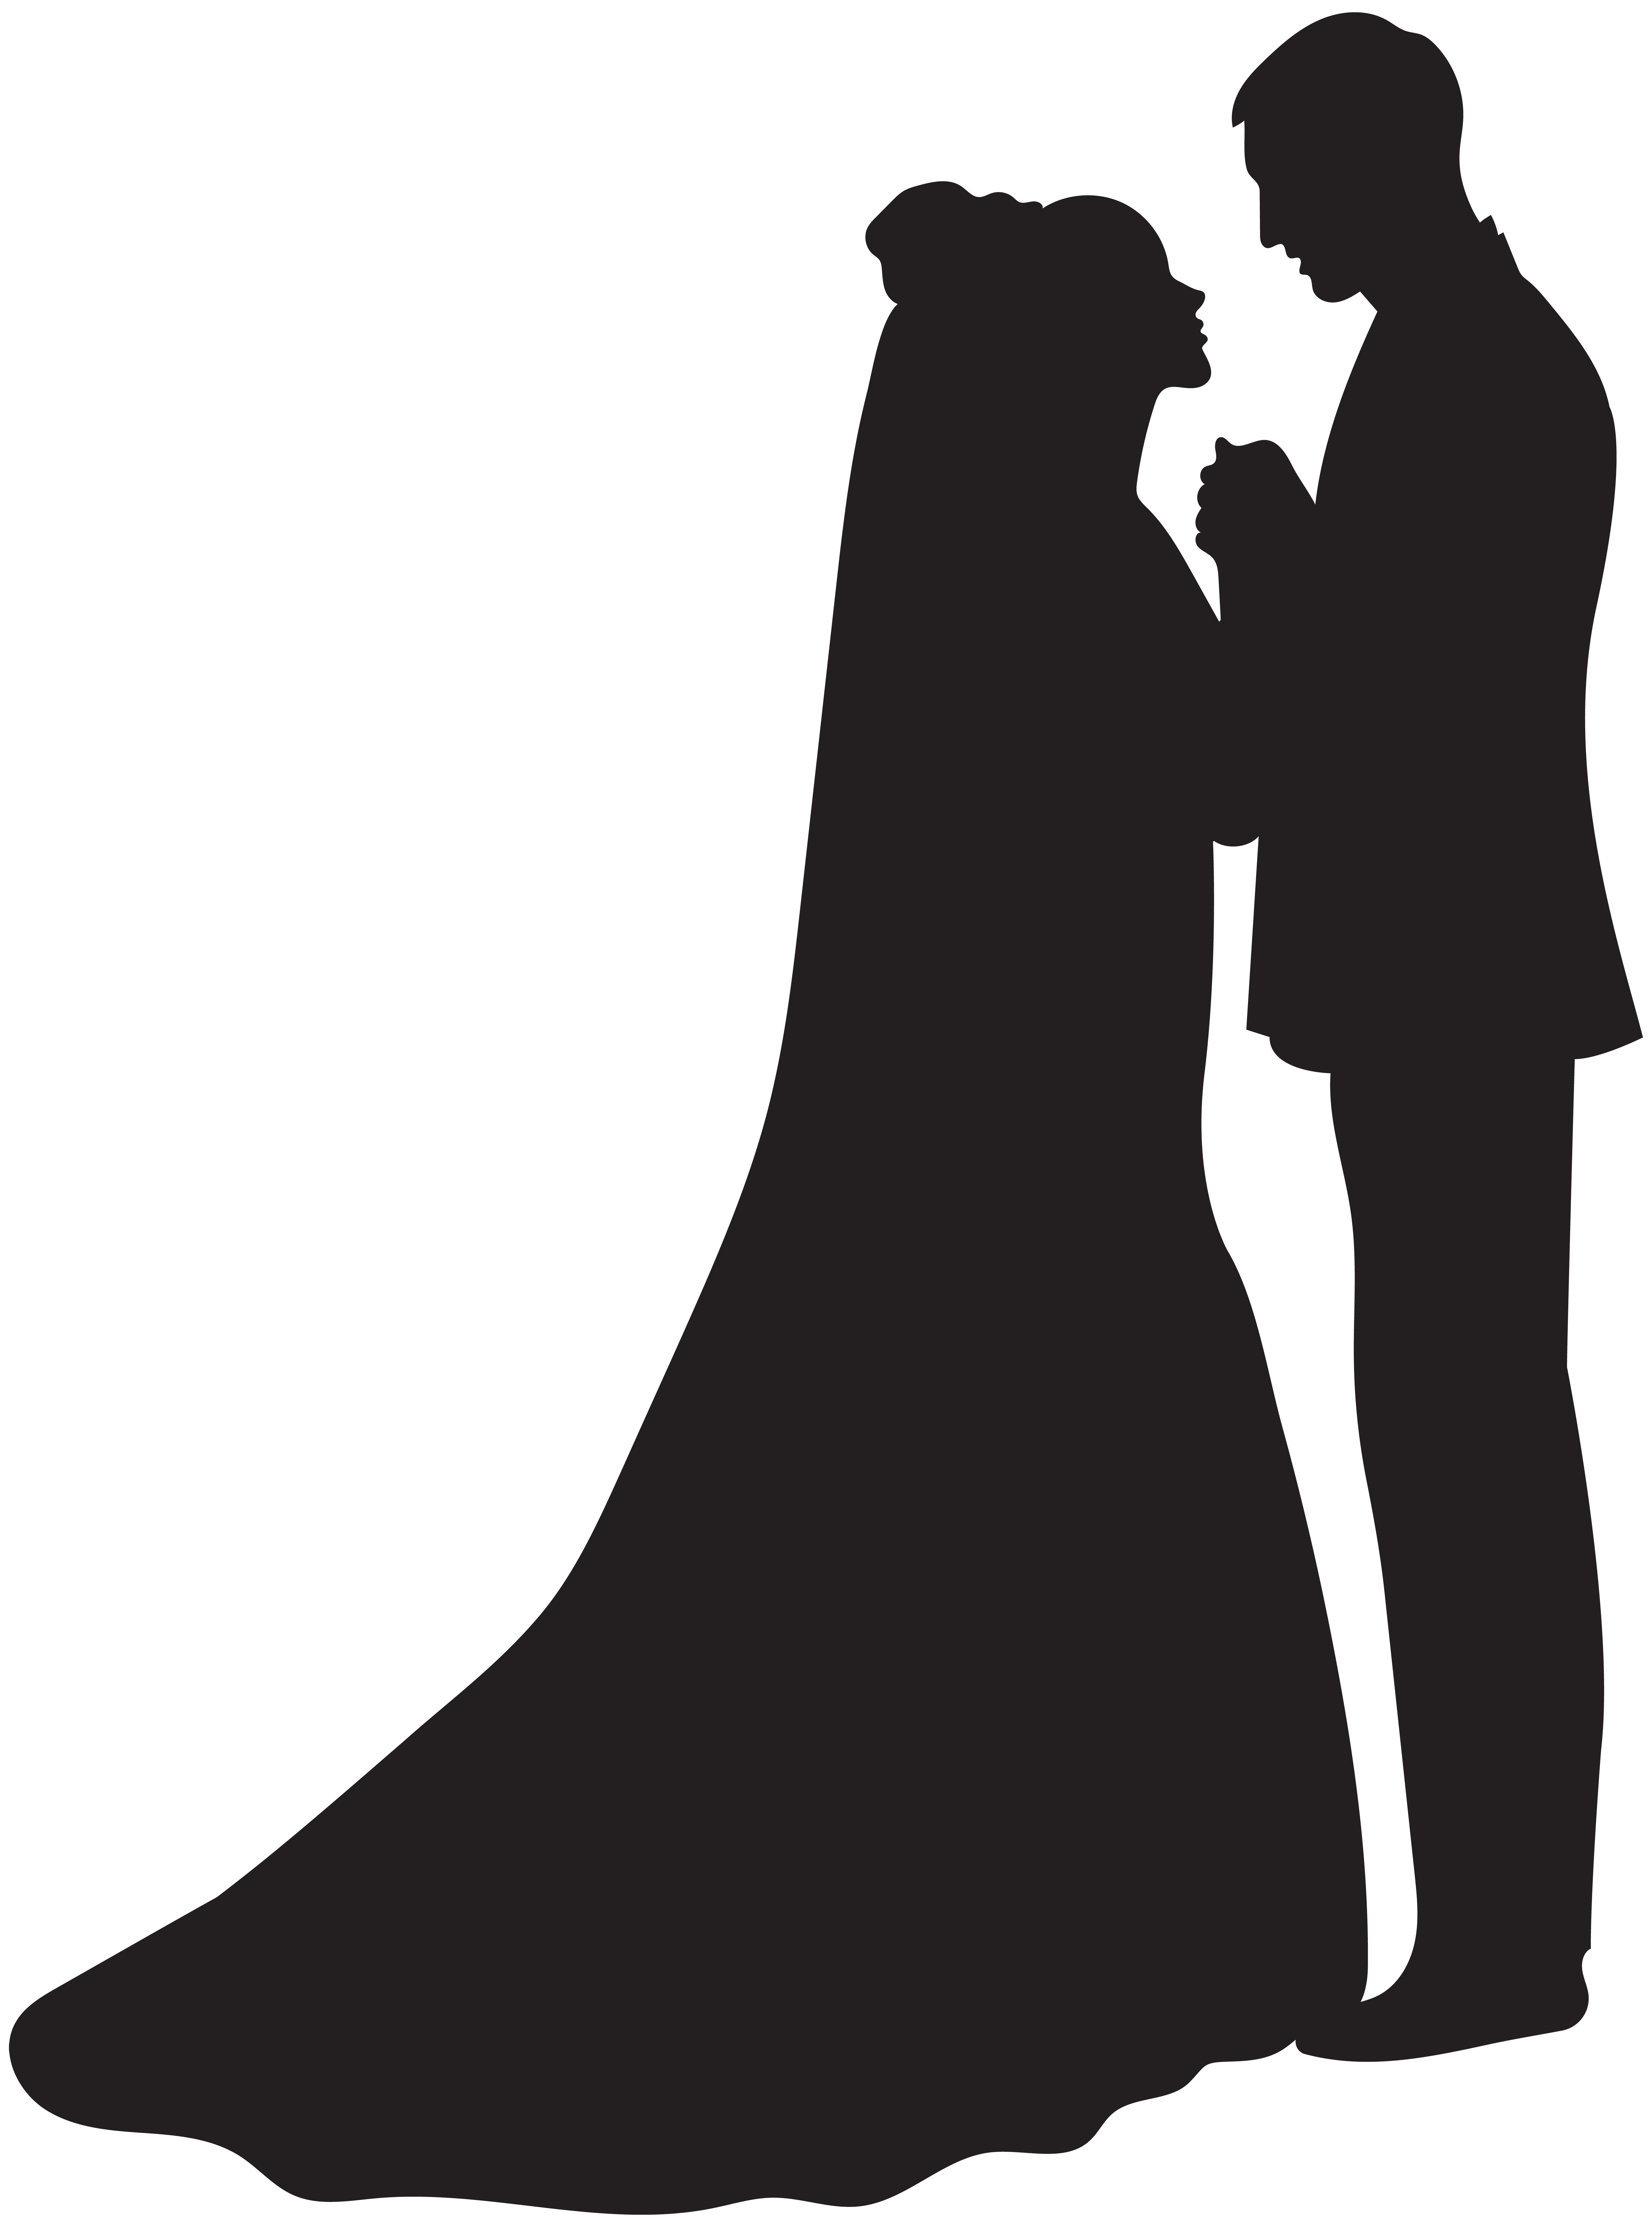 vector free library Silhouette at getdrawings com. Groom clipart bride